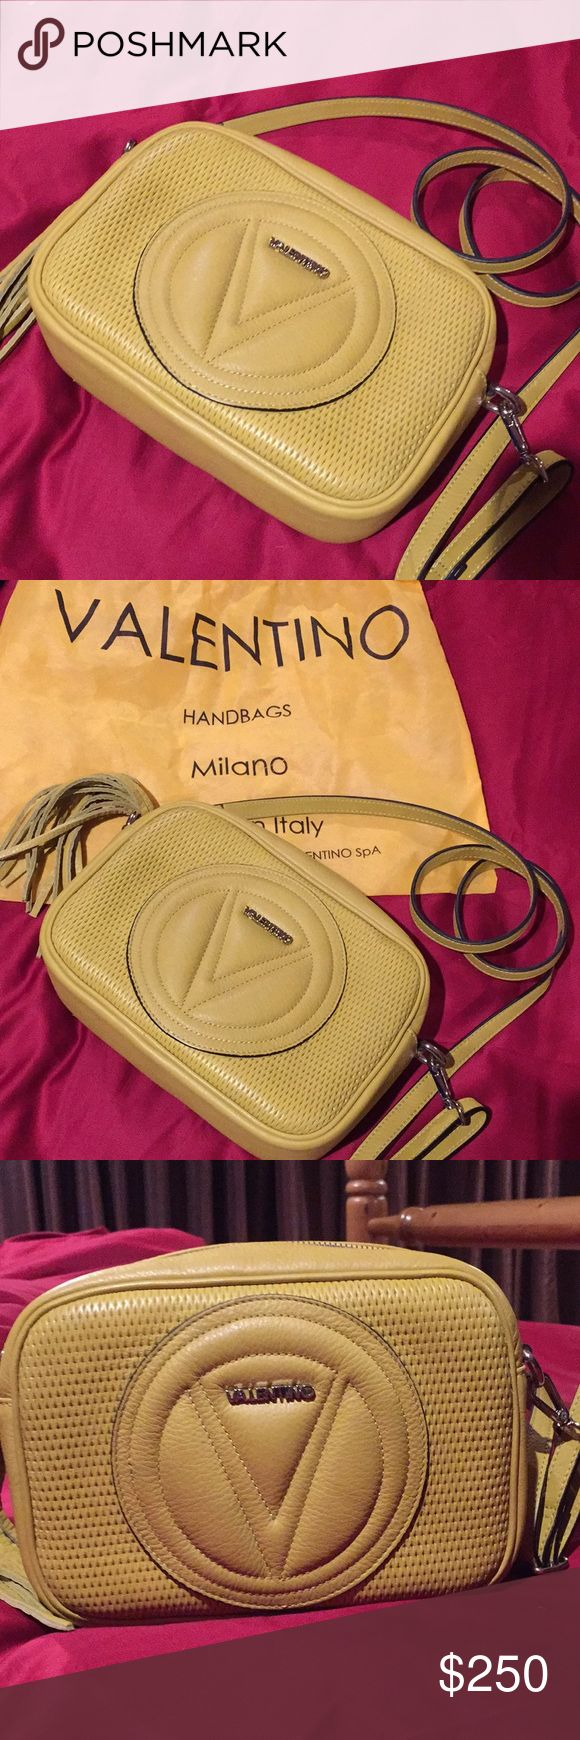 Valentino by Mario Valentino Handbag Valentino by Mario Valentino Crossbody Bag. Only used twice, like new. Great color and a must have style. Perfect for on the go. Mario Valentino Bags Crossbody Bags